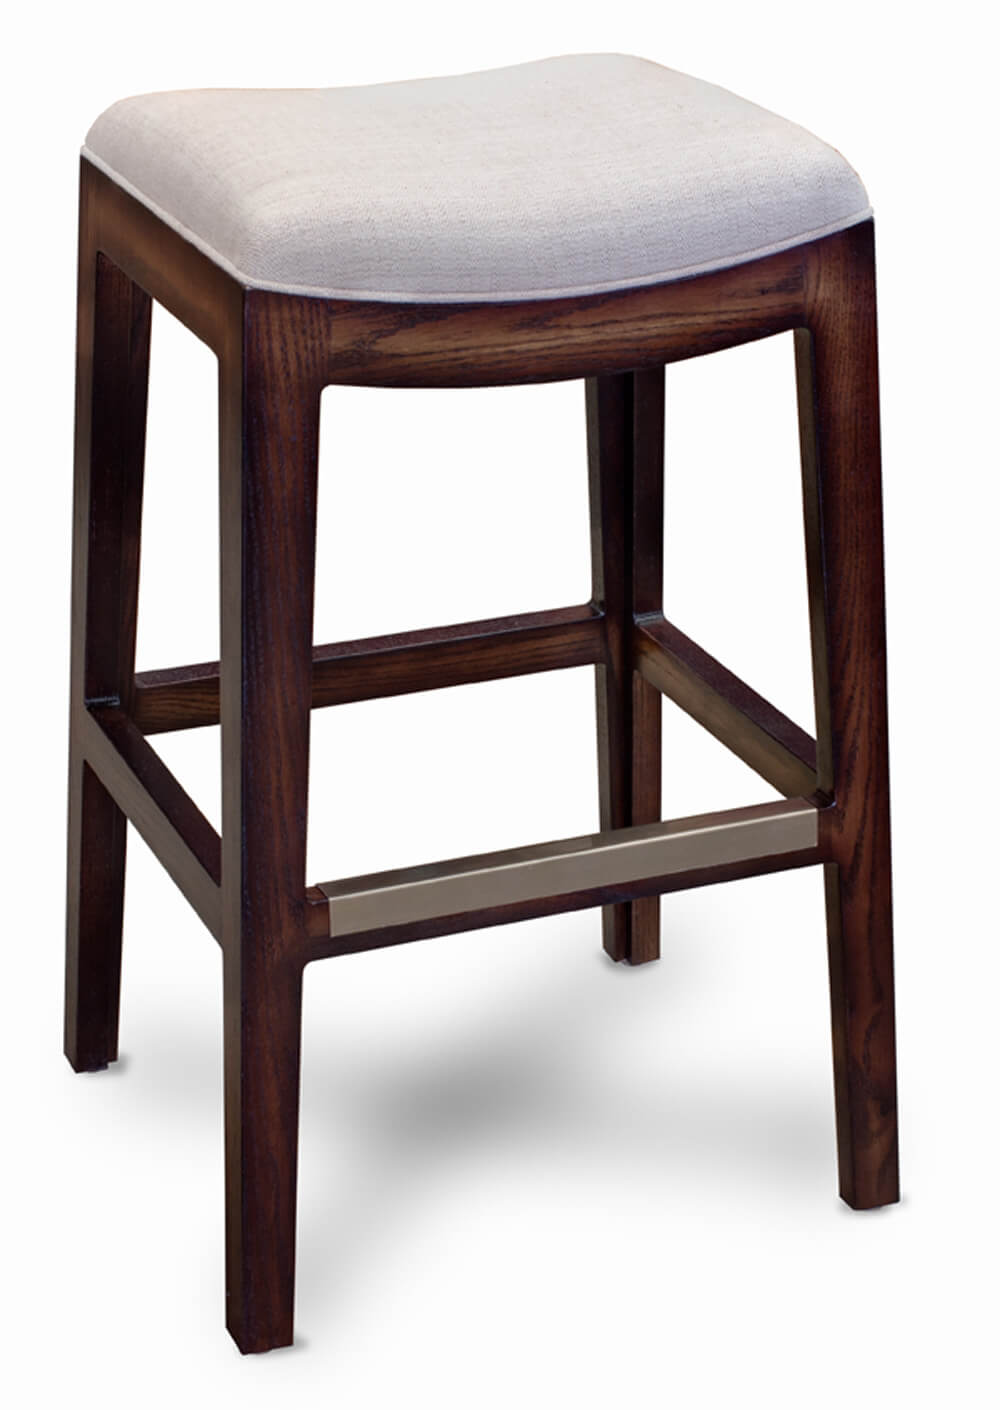 California house s100 bar stool - Beautify your bar area with unique barstools ...